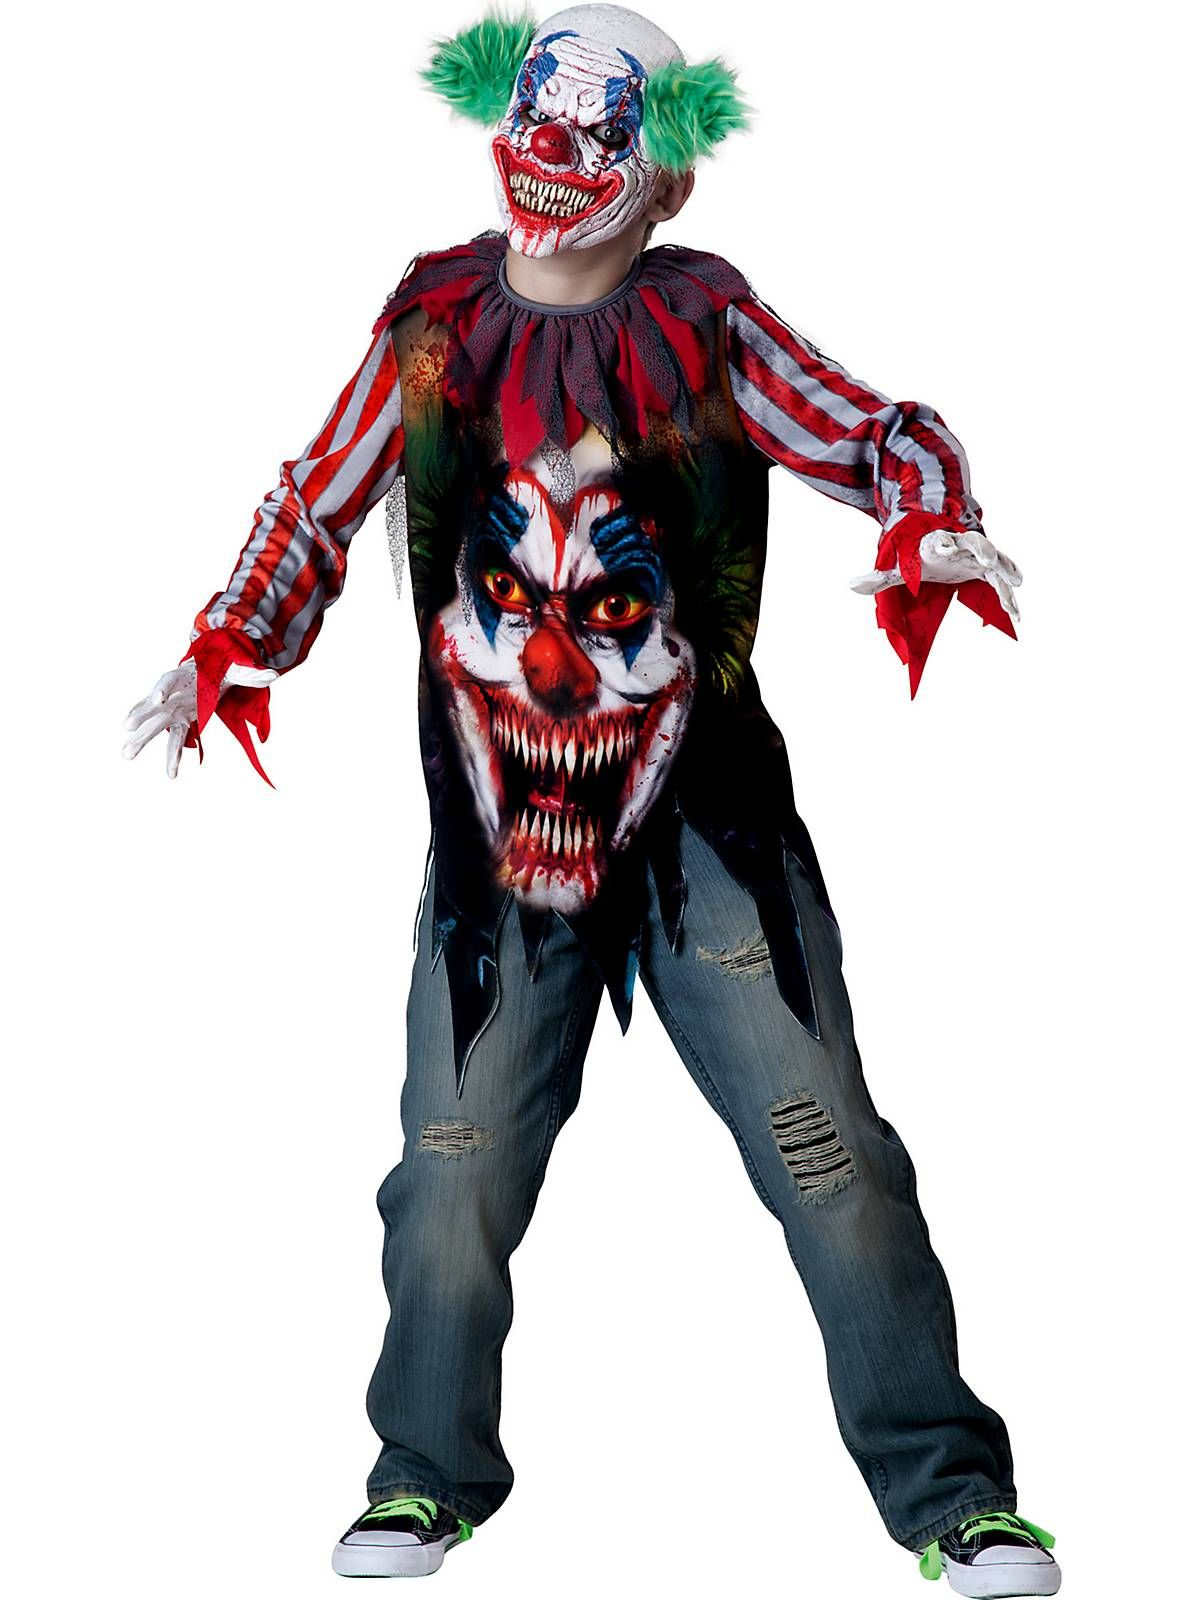 Halloween Kostume Jungs.Big Top Terror Costume Cheap Horror Costumes For Boys Scary Clown Costume Clown Costume Kids Halloween Costumes For Kids